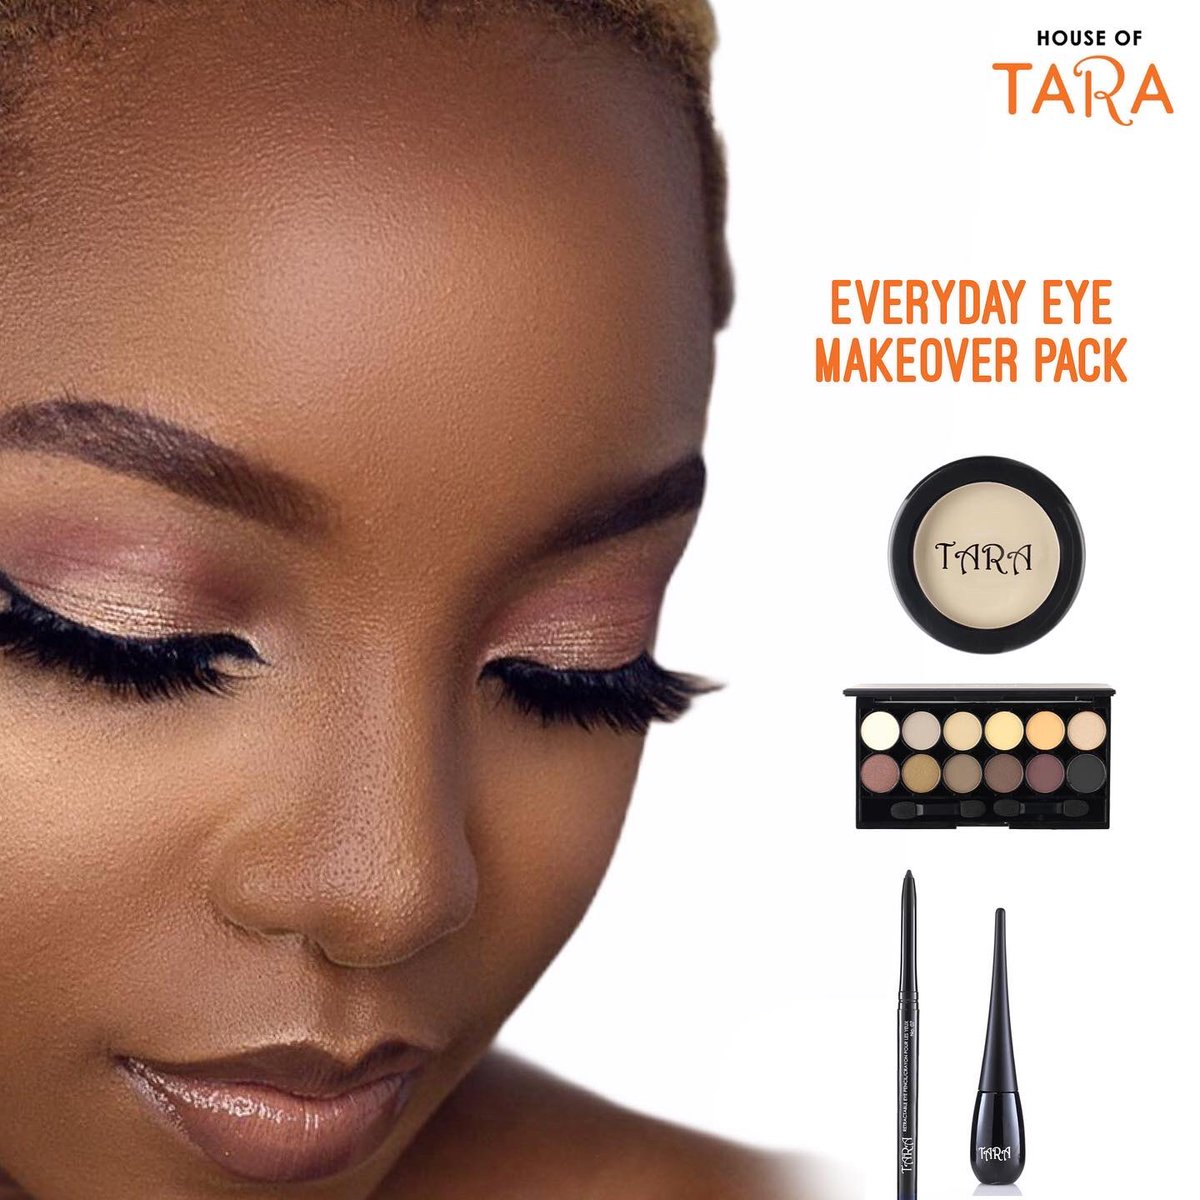 Want that baby girl eye beat for your everyday look ?? 💁🏽‍♀️💁🏽‍♀️ . We've got you covered, shop this eye makeup set all under #12,000  . Details:  Queen Nana 12 eyeshadow: #4,100 Liquid liner: #2,460 Retractable eyeliner: #1,540 Eyeshadow primer: #3,590  All available to shop via DM https://t.co/yJsyCocmXi